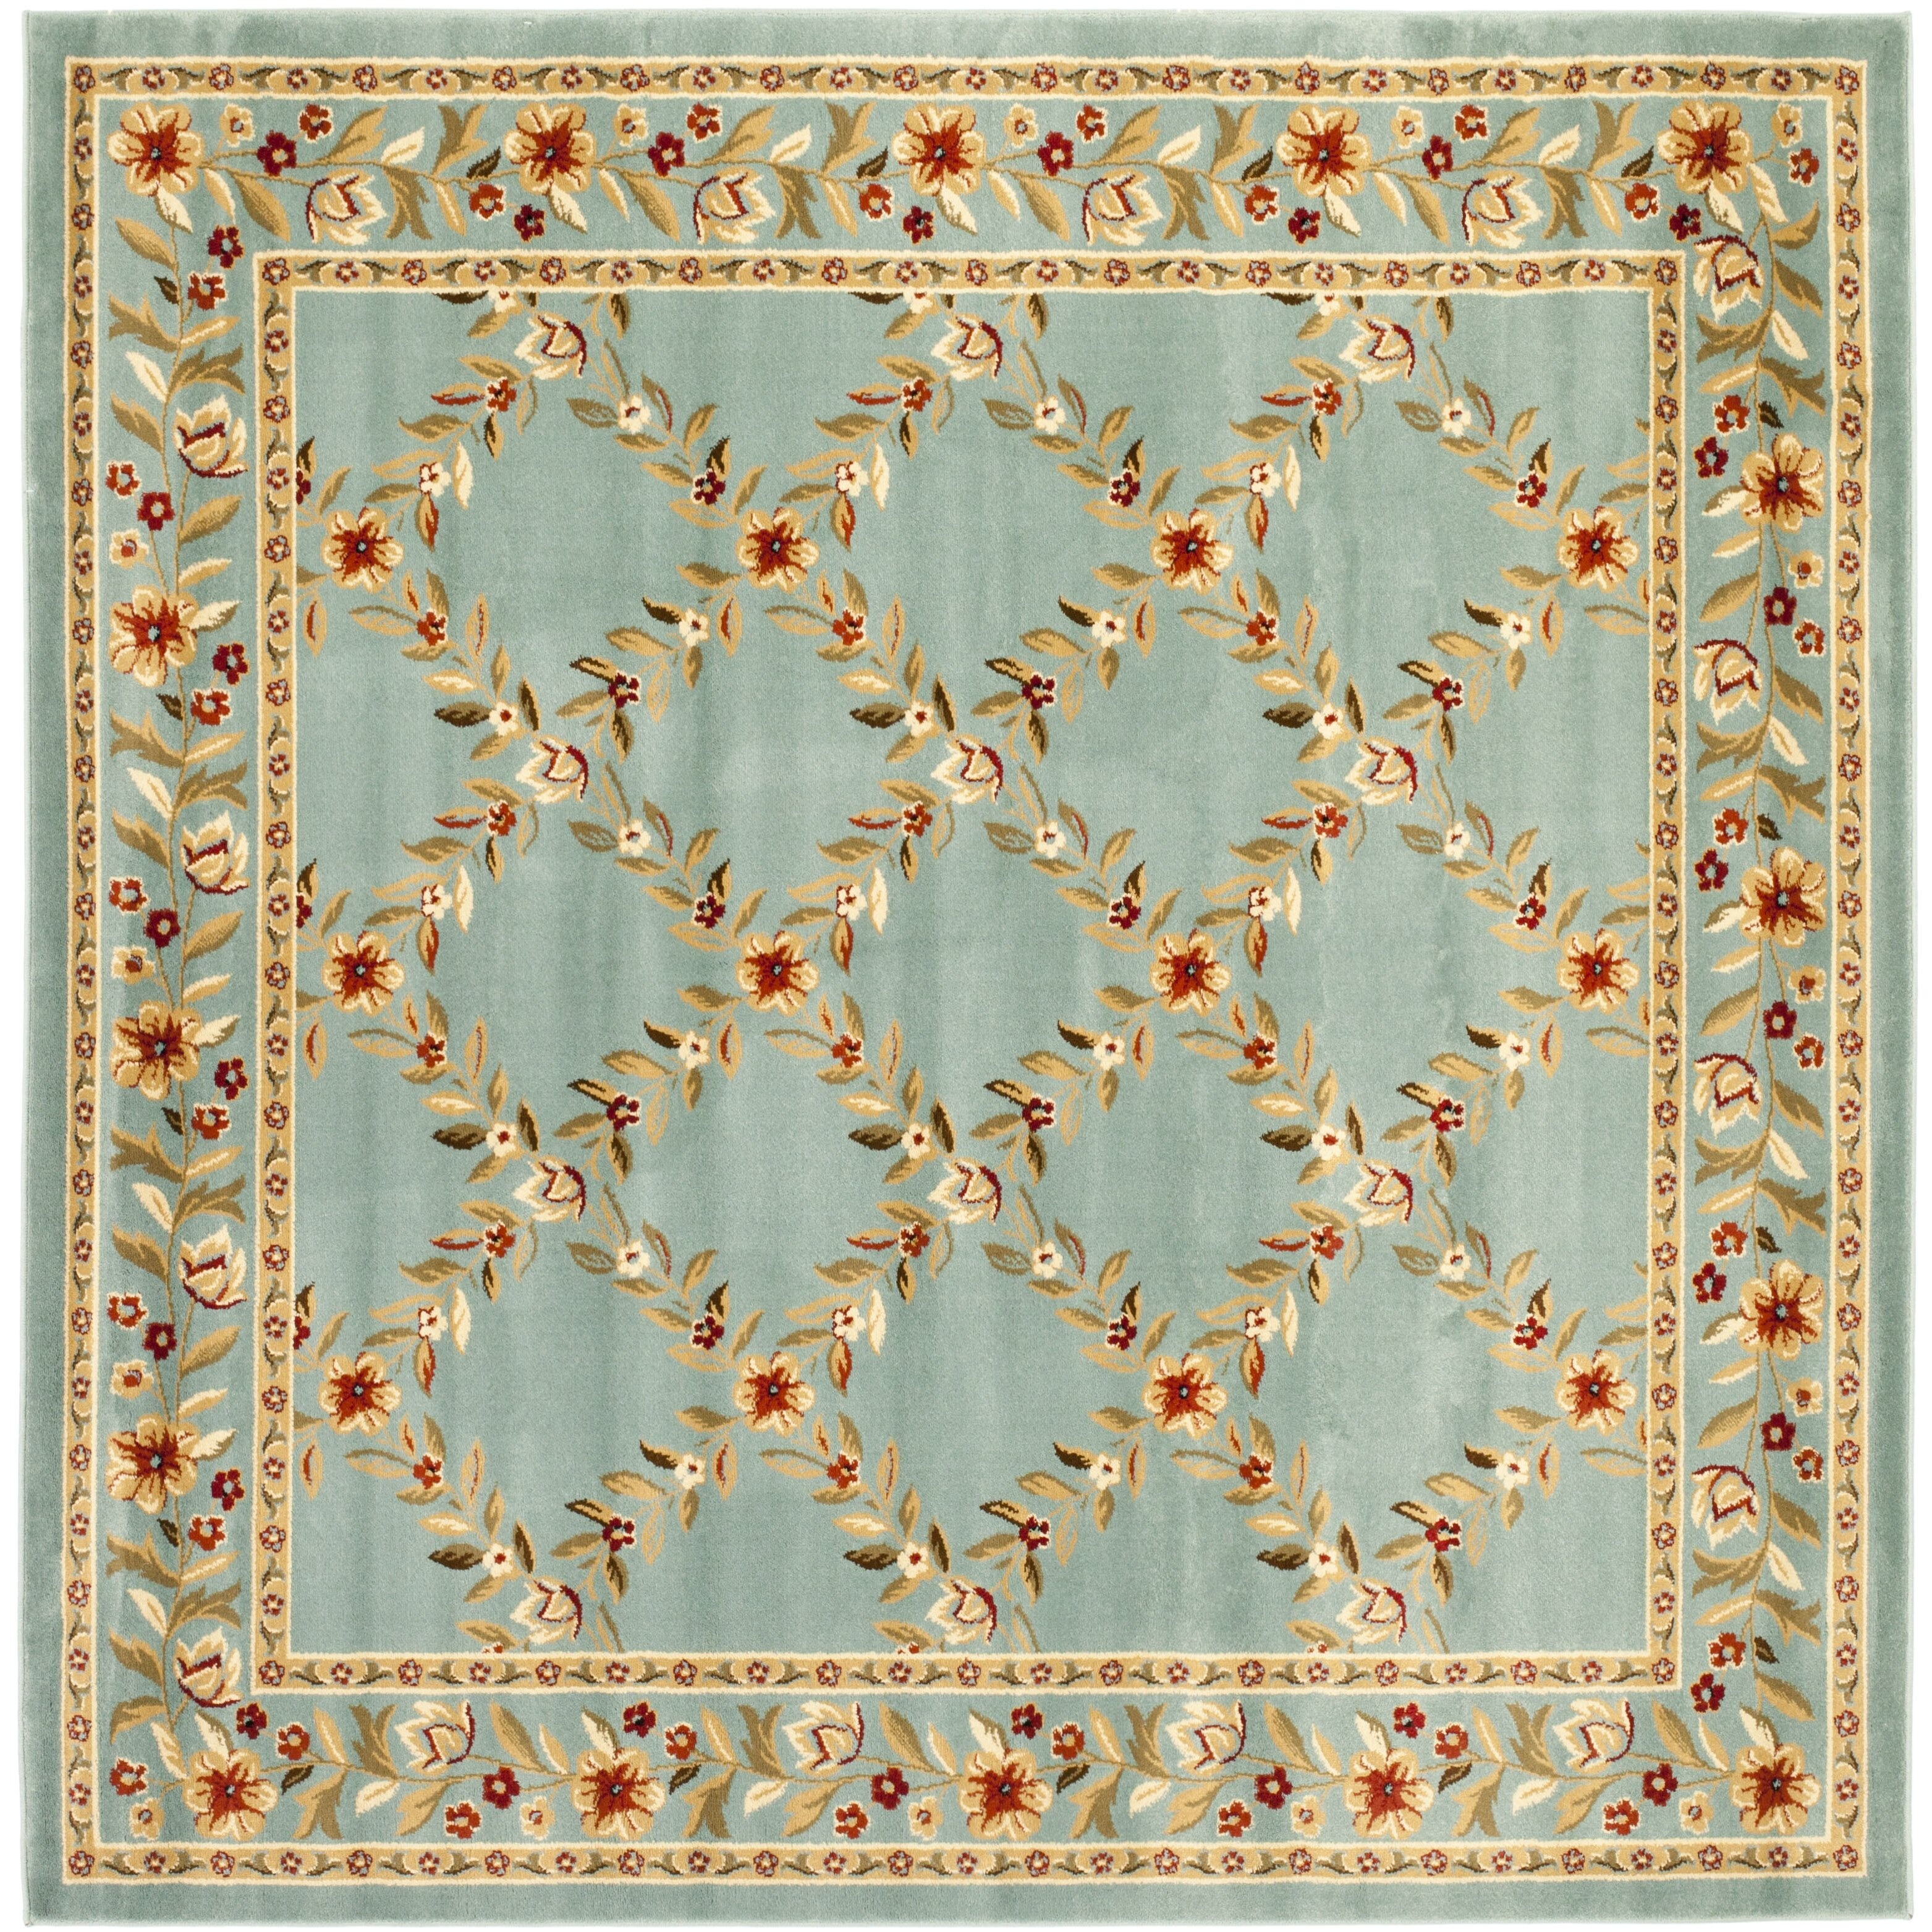 Checked Area Rugs: Rosalind Wheeler Markenfield Blue Checked Area Rug